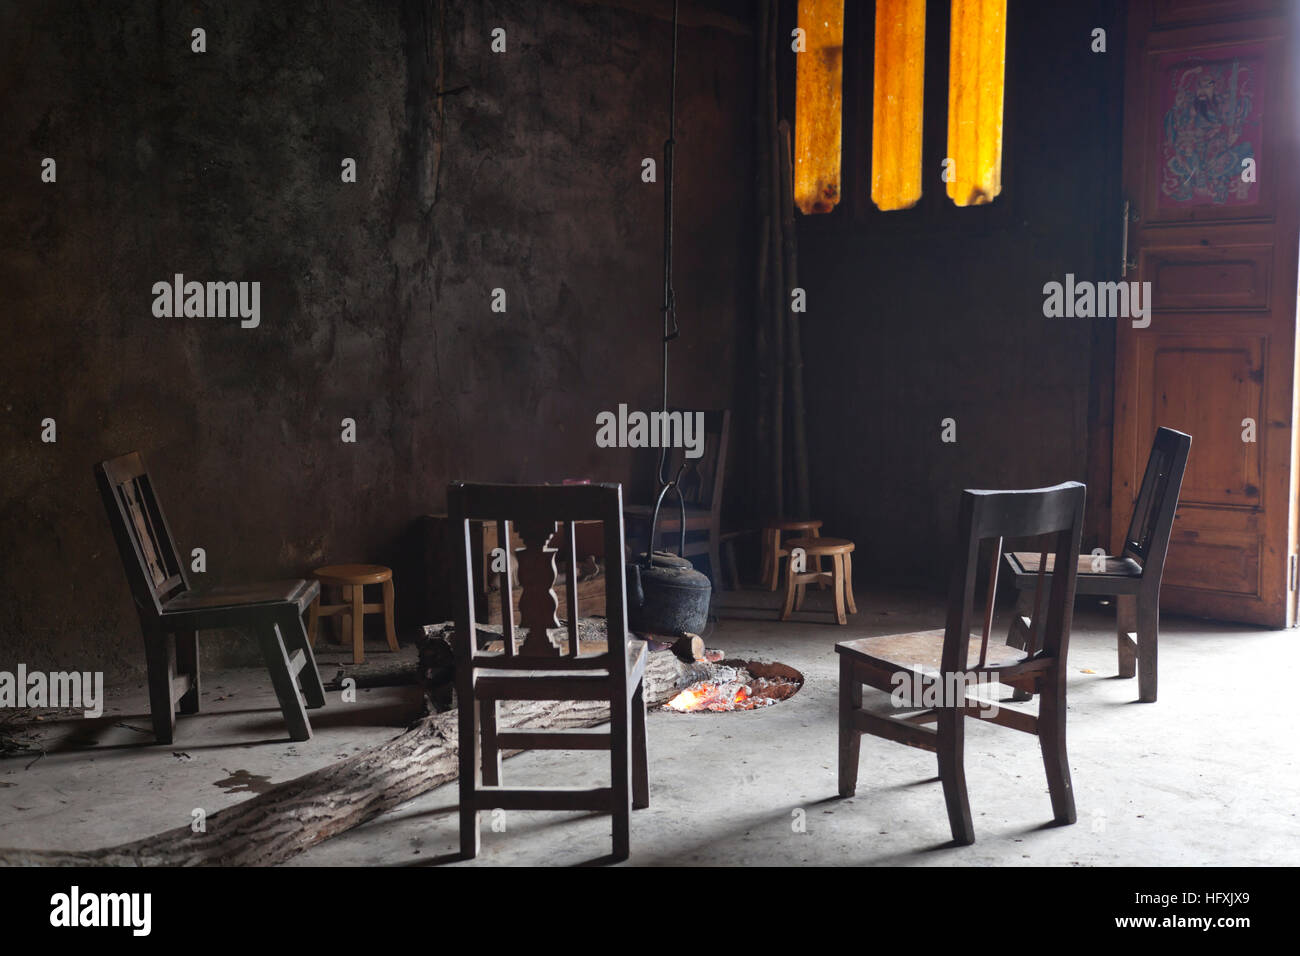 Homemade chairs set around an open log fire in the open living room of a farmhouse in a remote village in west China. - Stock Image